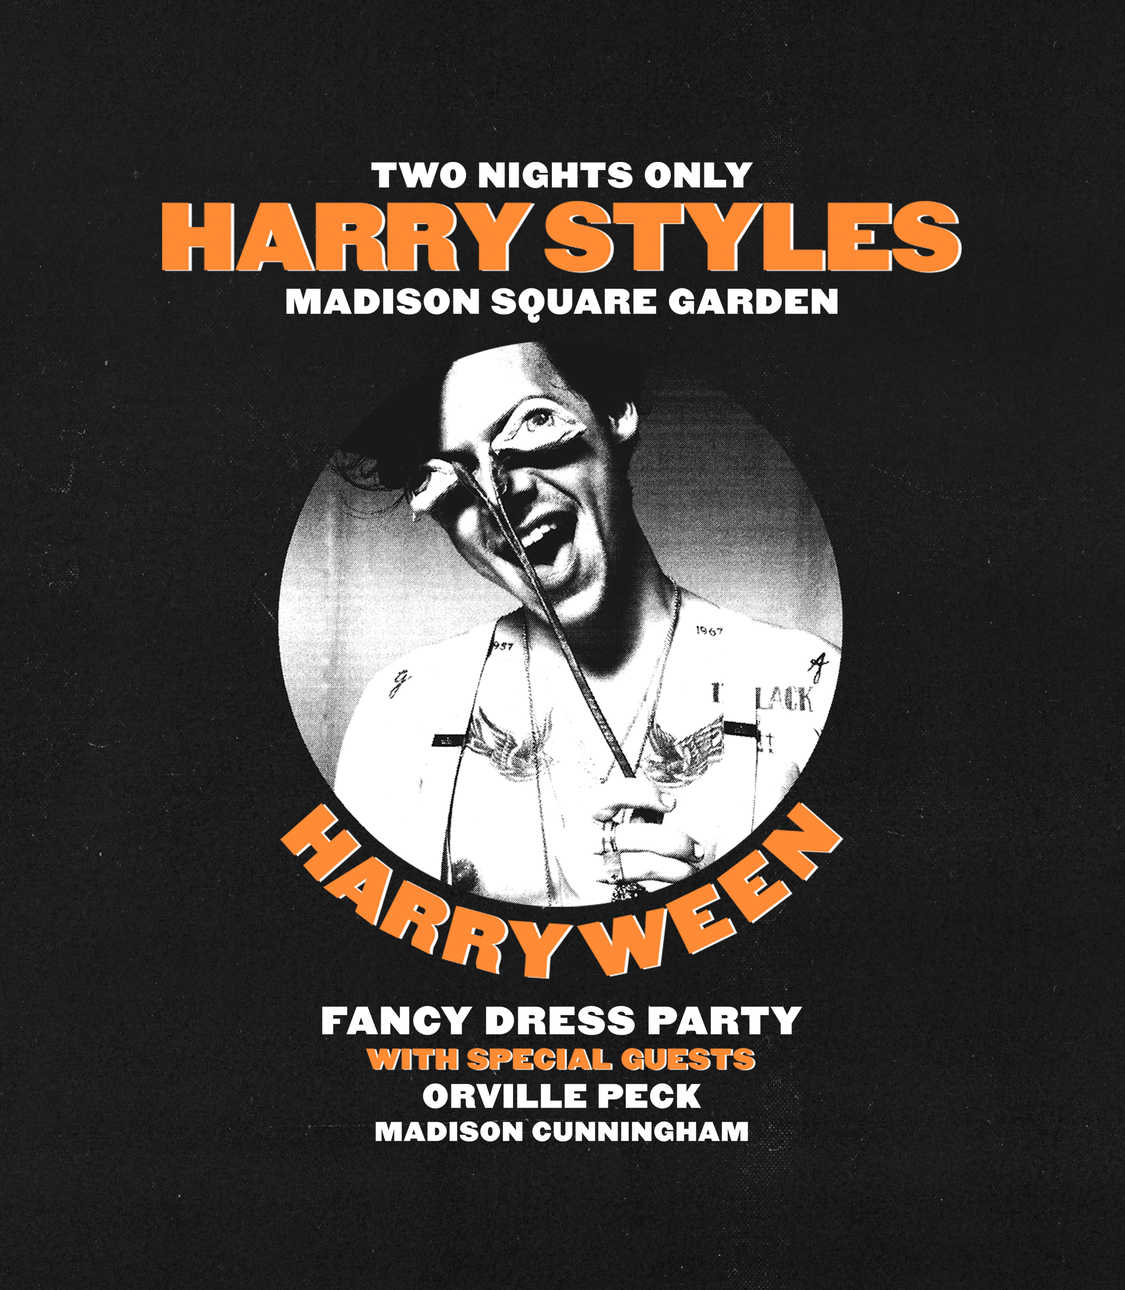 Harry Styles Harryween concert at Madison Square Garden with special guest Orville Peck